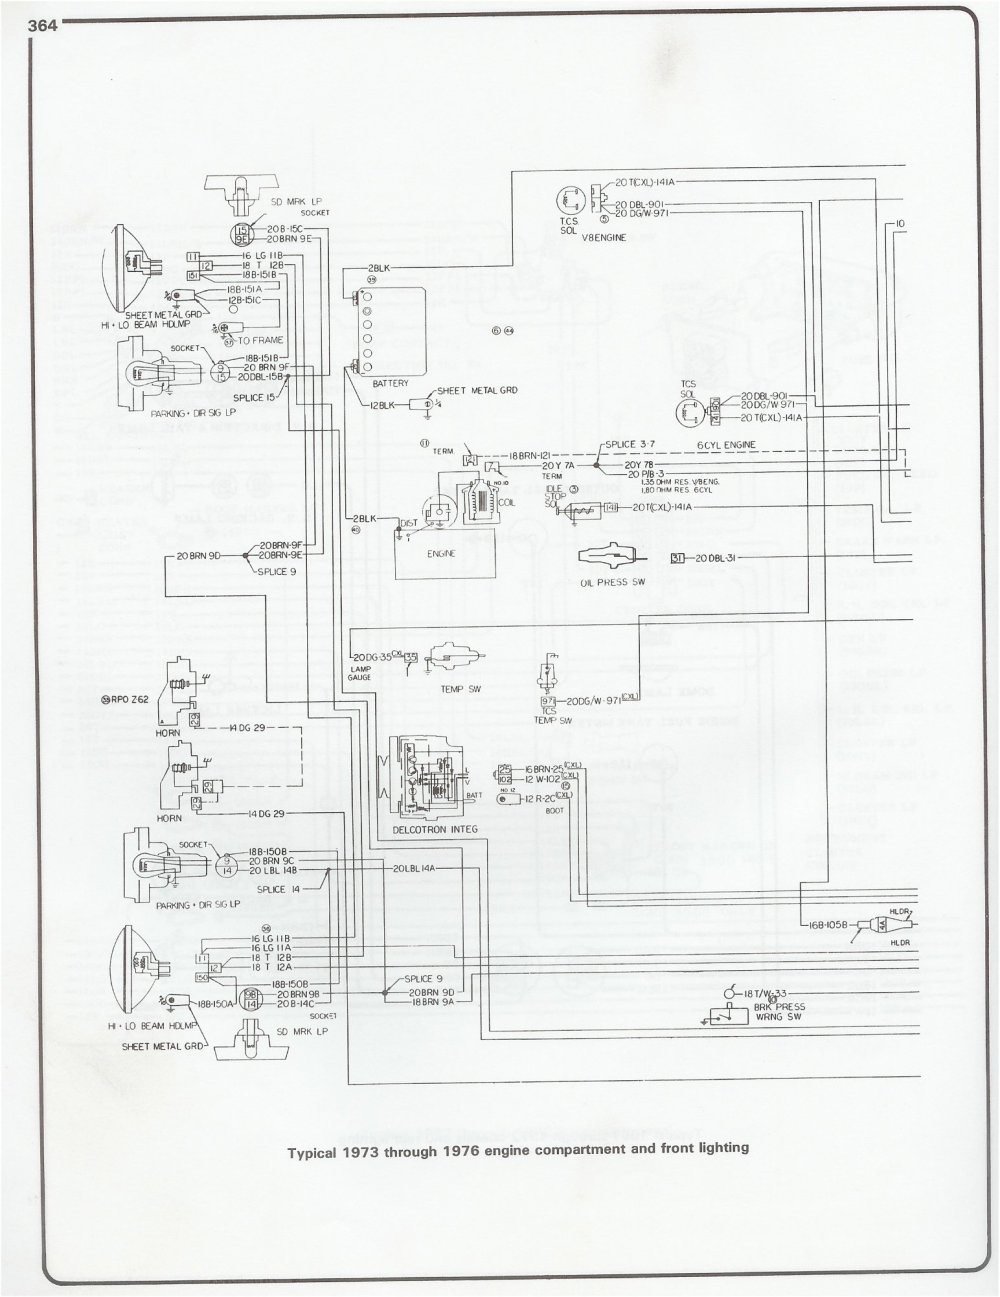 medium resolution of 73 76 engine and front lighting complete 73 87 wiring diagrams